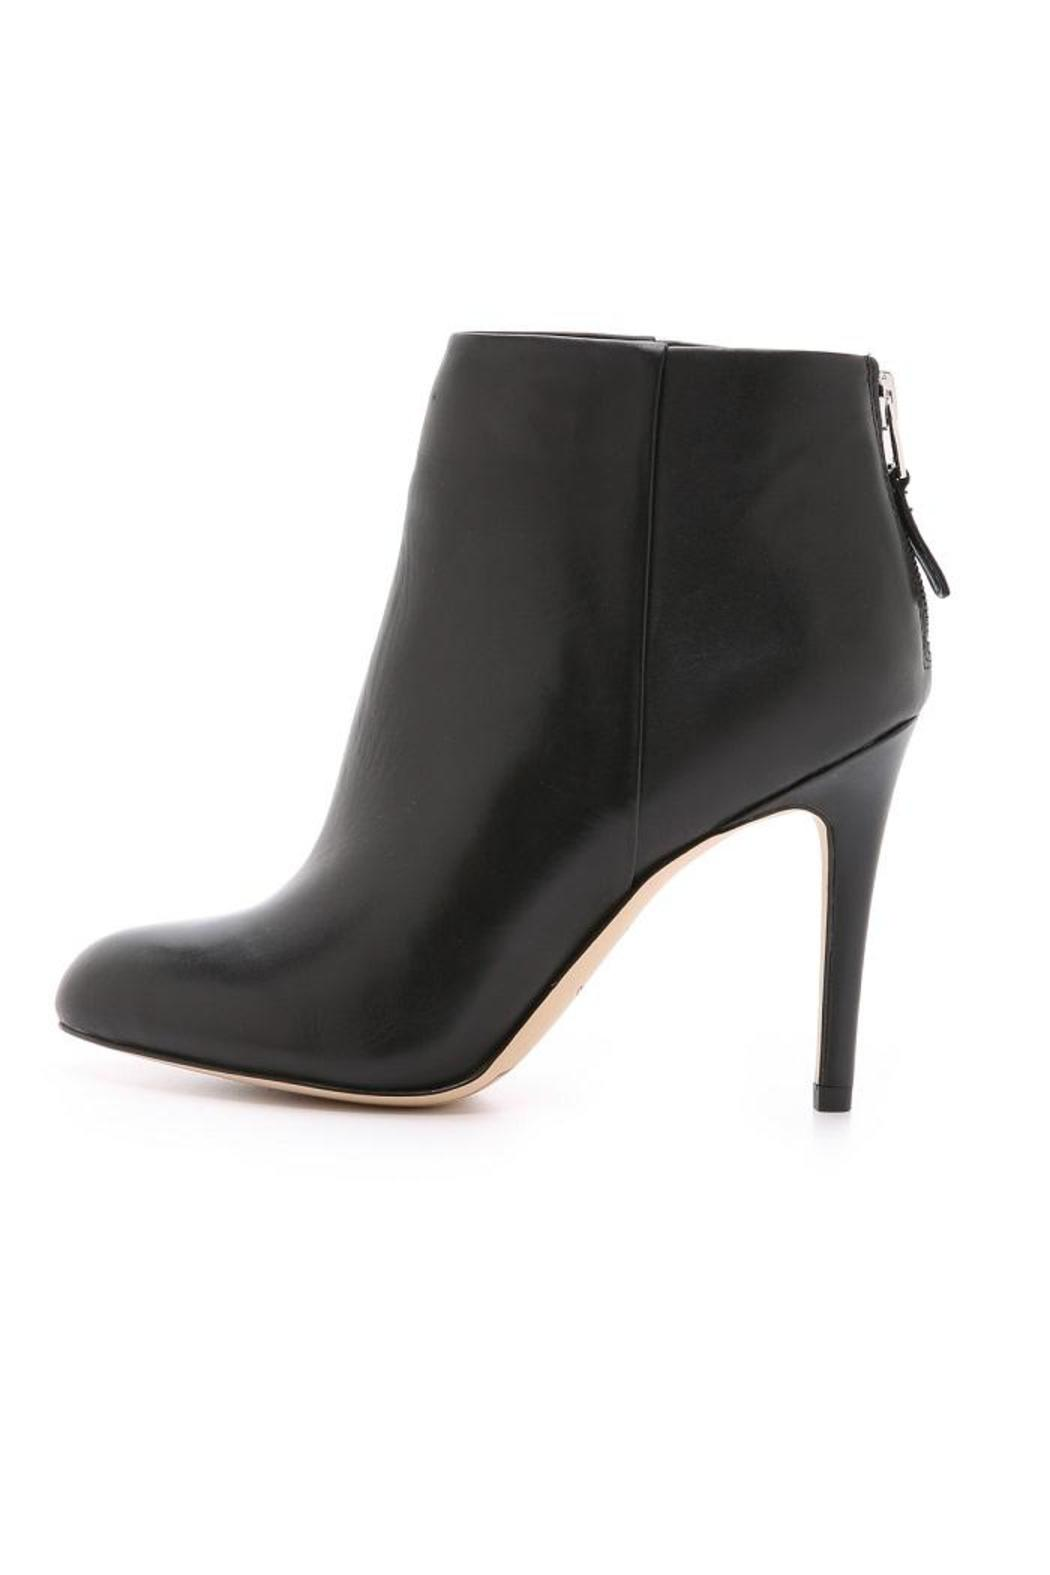 Sam Edelman Black Leather Booties from